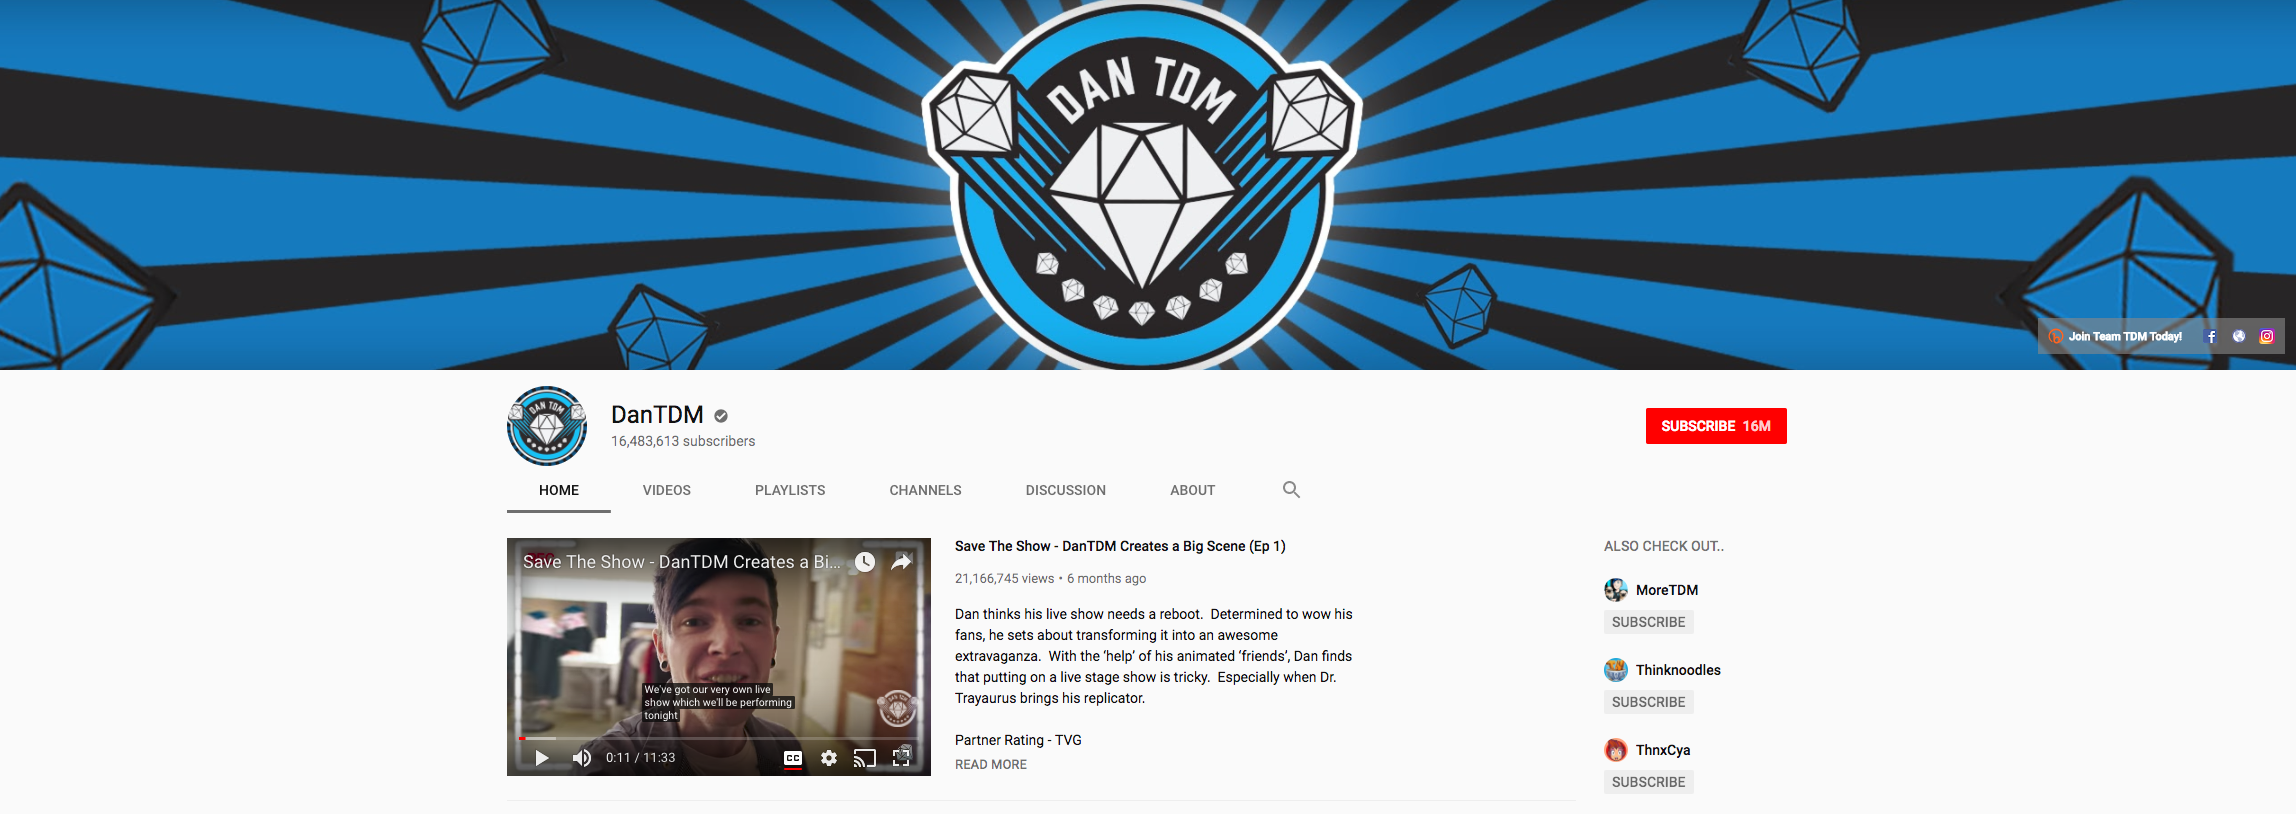 DanTDM Top Gaming Influencers